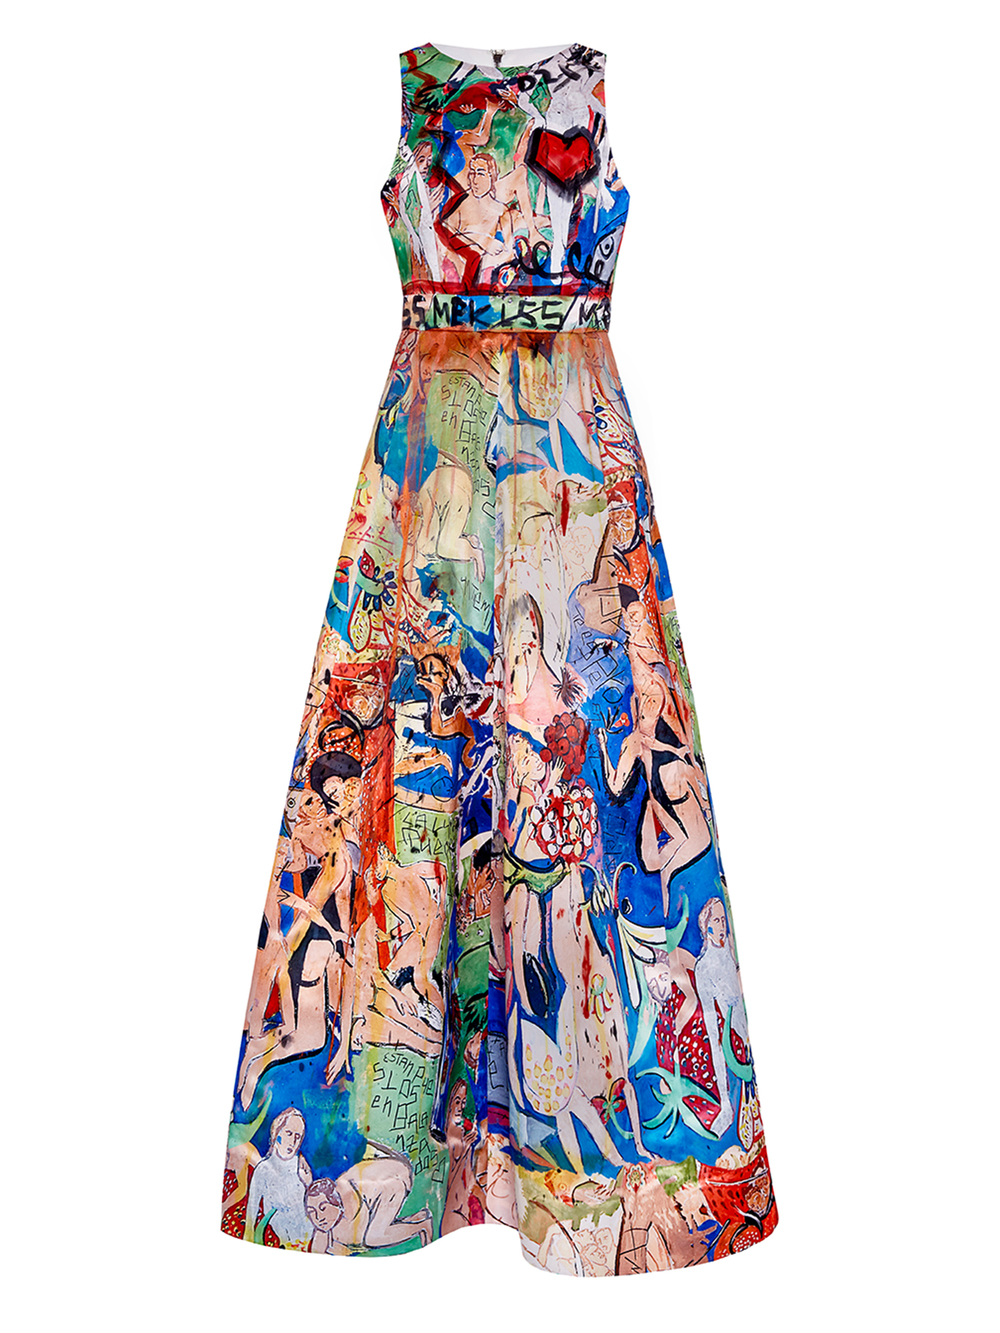 DOMINGO ZAPATA -   alice + olivia Gown Hand-Painted By Domingo Zapata , 2015